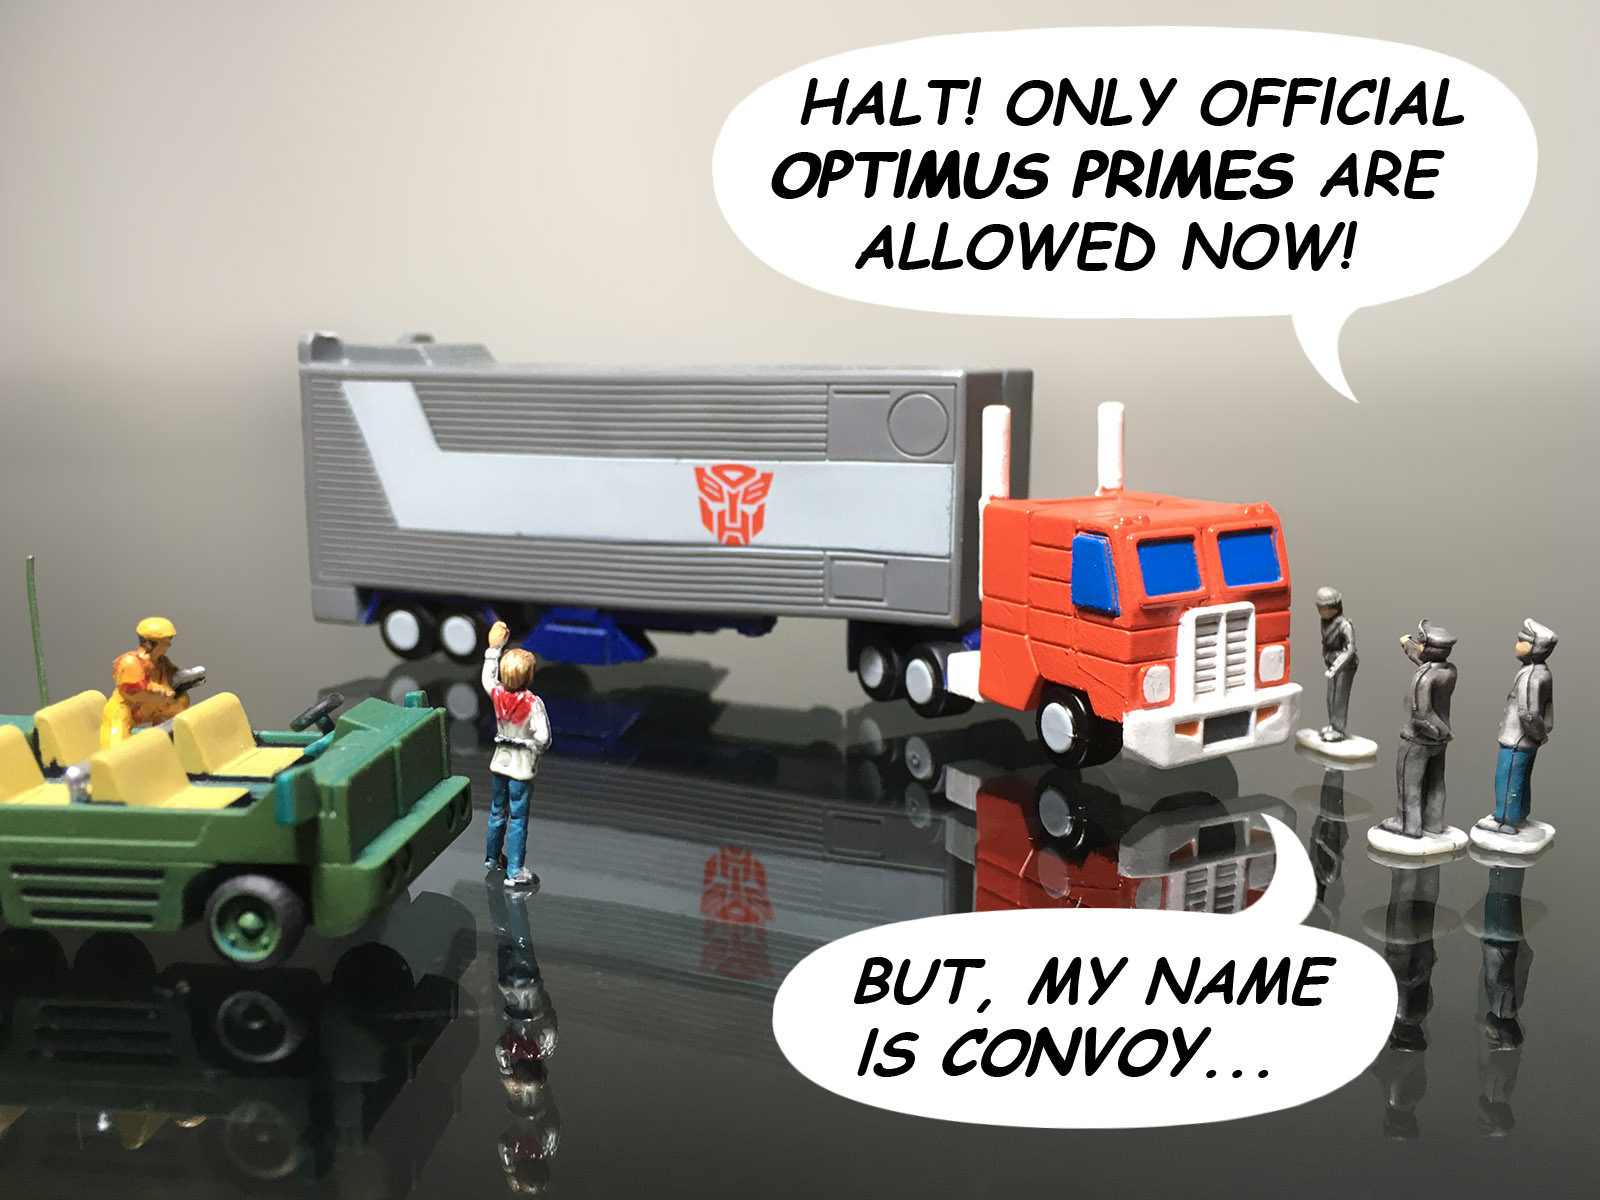 officially-convoy-jpg.28392224